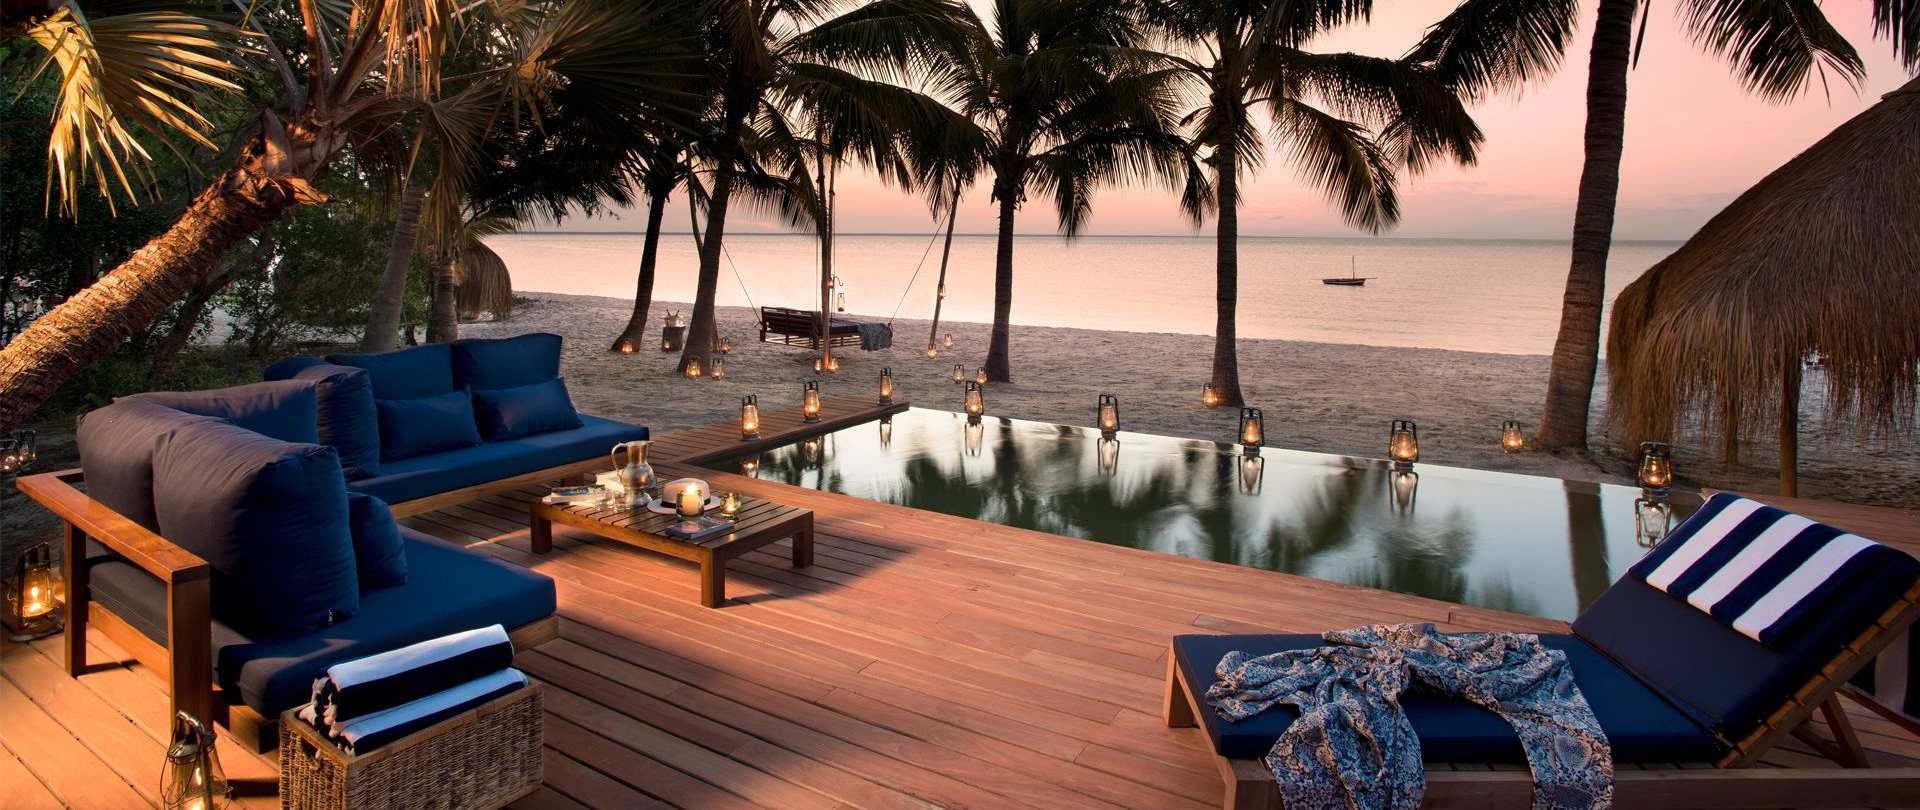 rooms-with-a-view-at-andbeyond-benguerra-island-in-mozambique.jpg.1920x810_0_273_10000